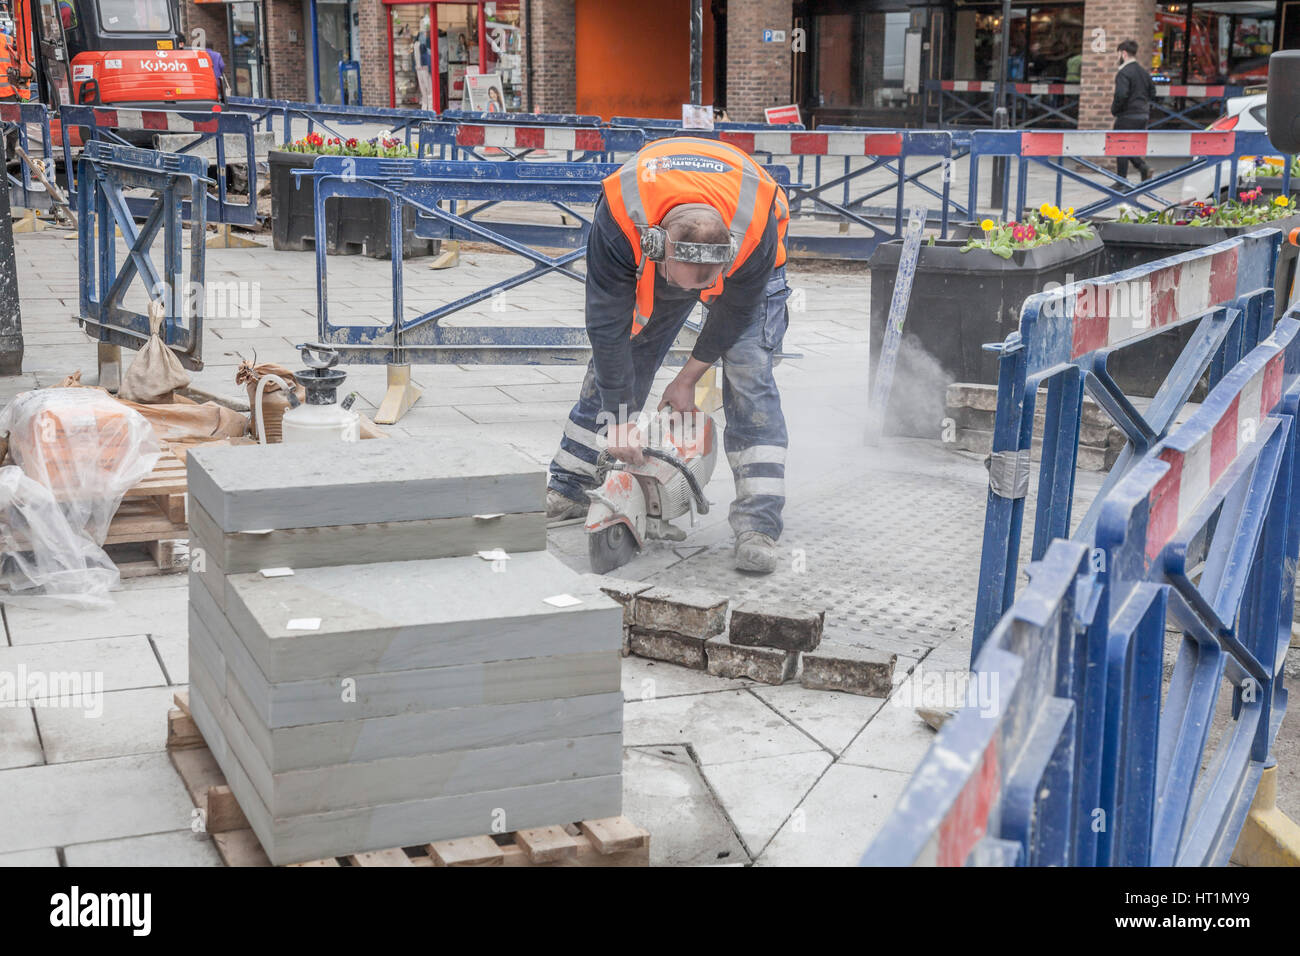 A council workman using a power tool to cut block paving in Durham city,England,UK - Stock Image